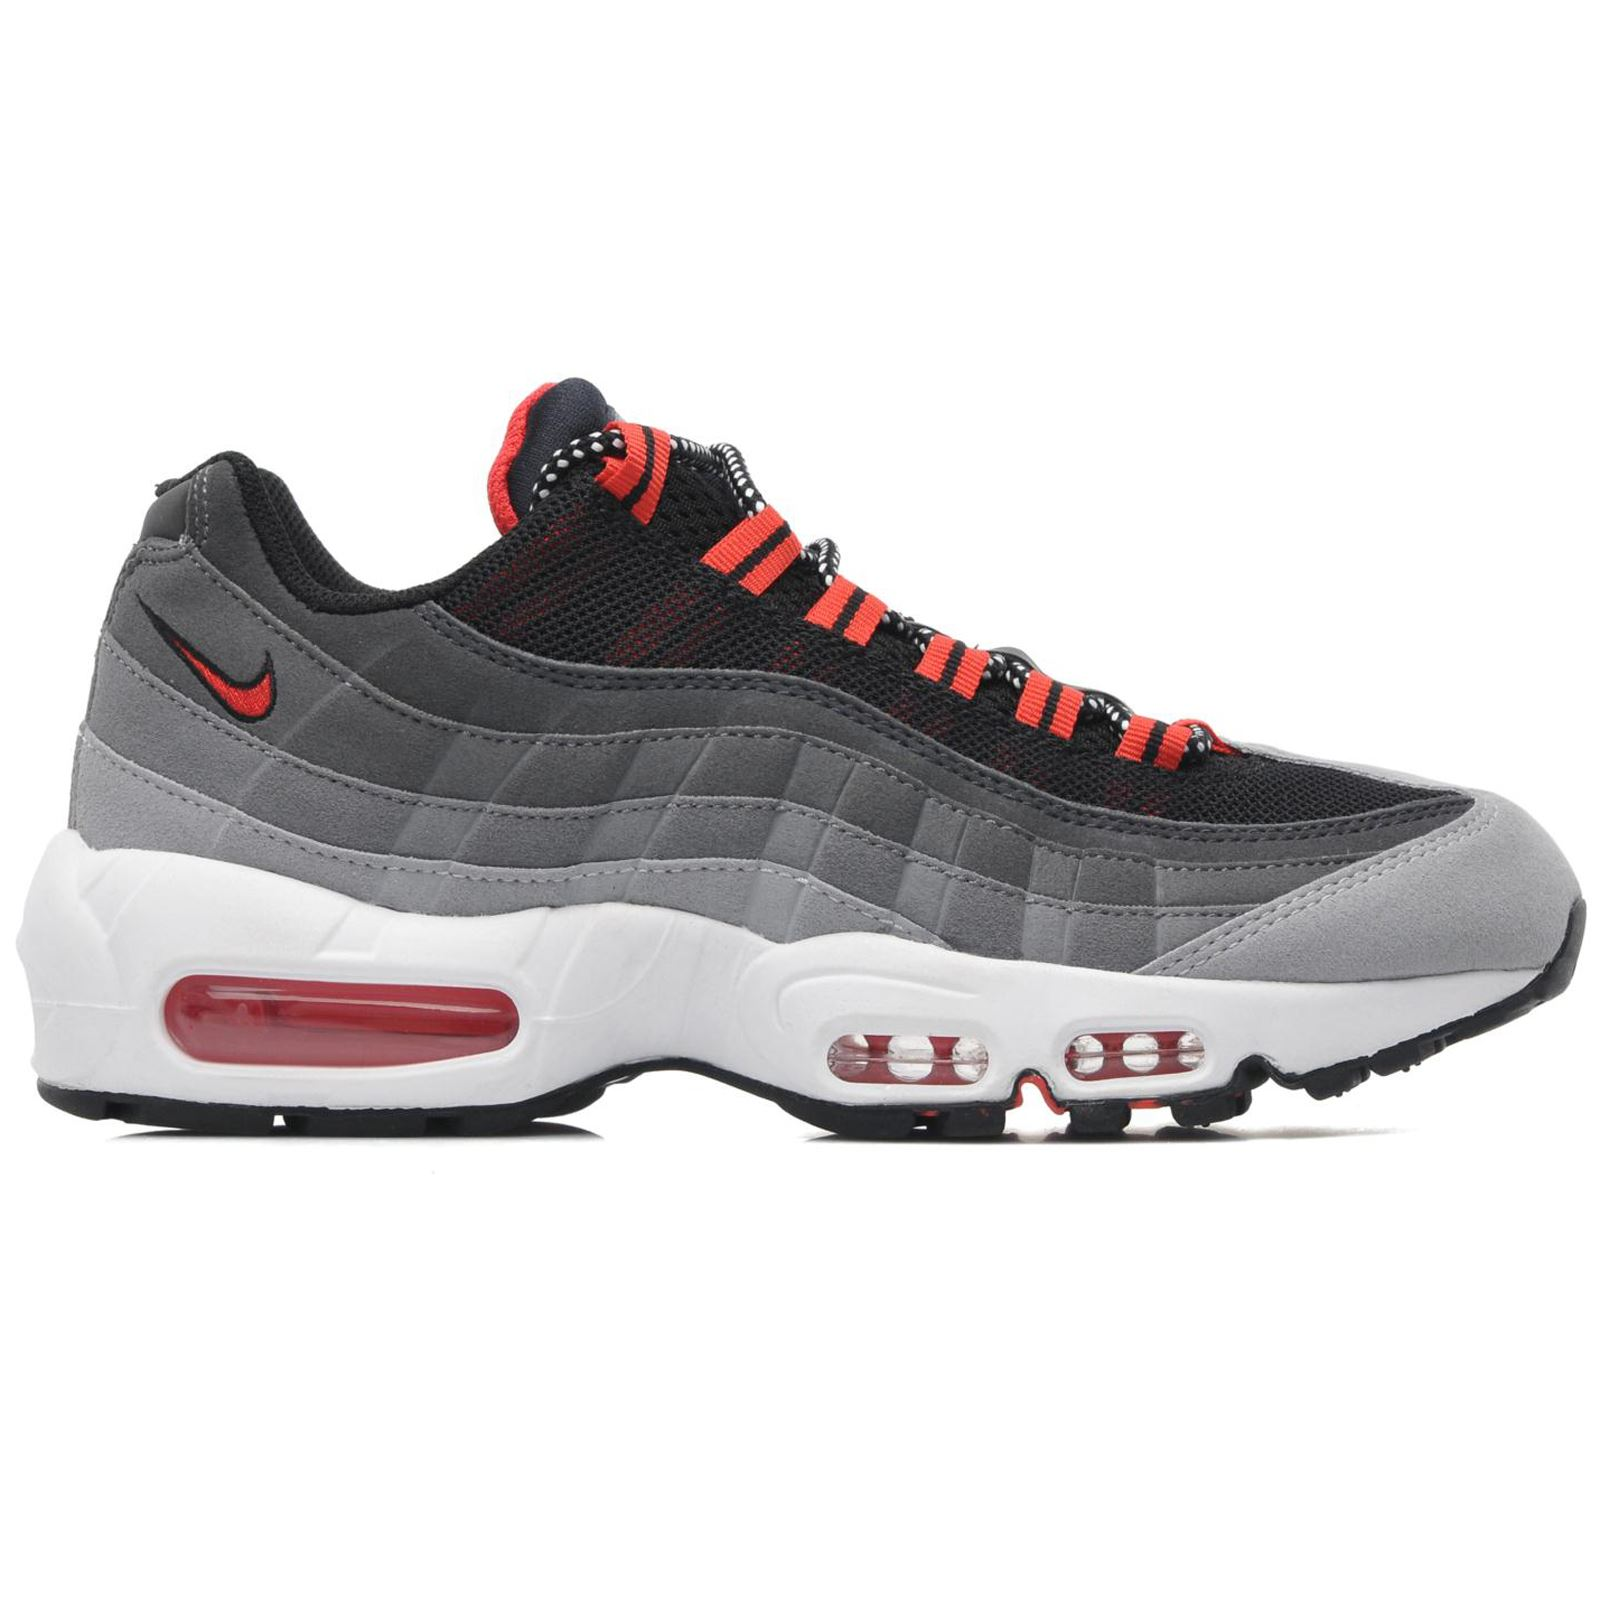 nike air max 95 leather mens trainers ebay. Black Bedroom Furniture Sets. Home Design Ideas